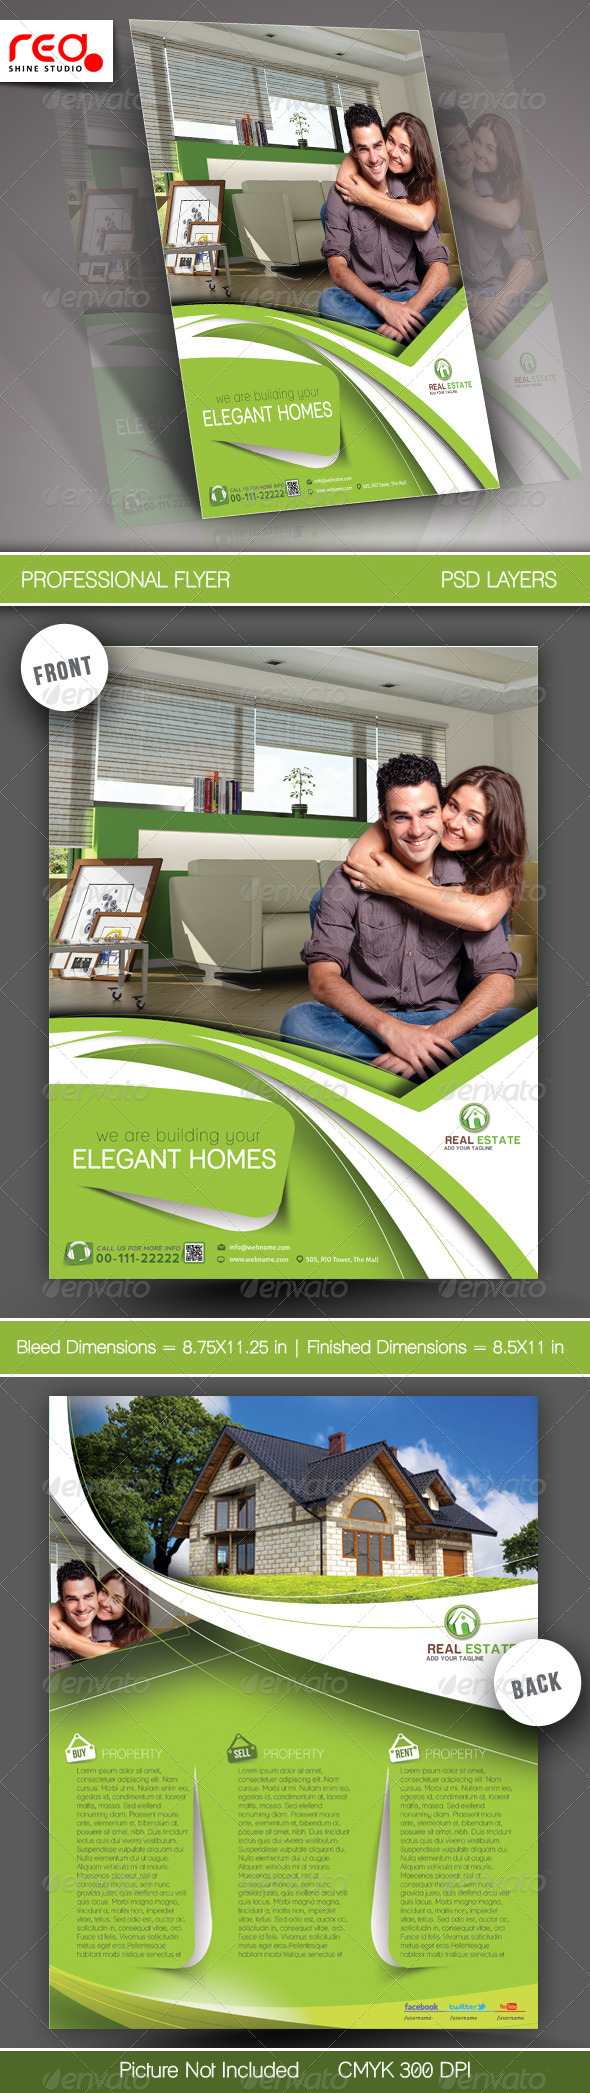 Real Estate Flyer & Poster Template - Corporate Flyers